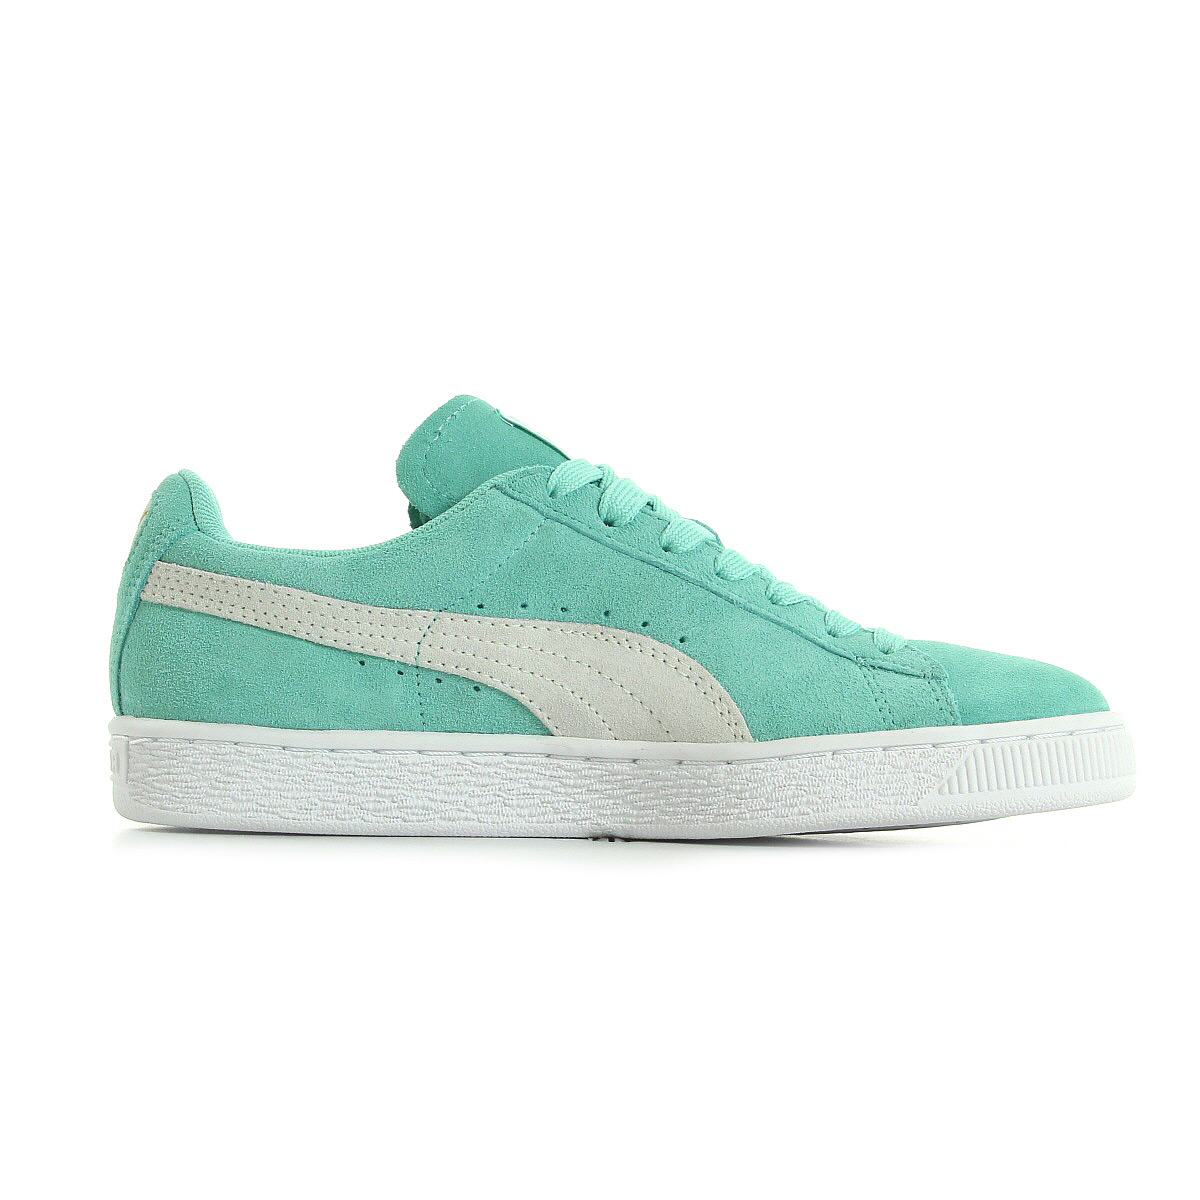 chaussures baskets puma femme suede classic wn 39 s taille vert verte cuir lacets ebay. Black Bedroom Furniture Sets. Home Design Ideas